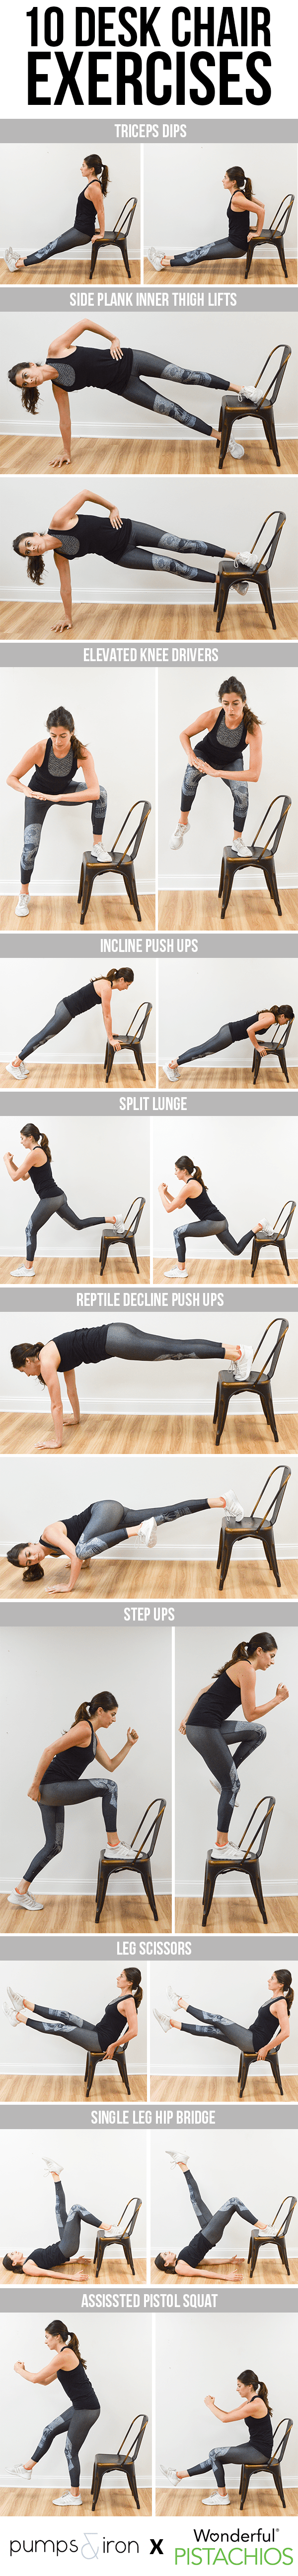 office chair exercises all weather reclining garden chairs 10 you can do with a desk pumps iron try picking five of the above and performing them in circuit 45 seconds work 15 rest complete two four times for